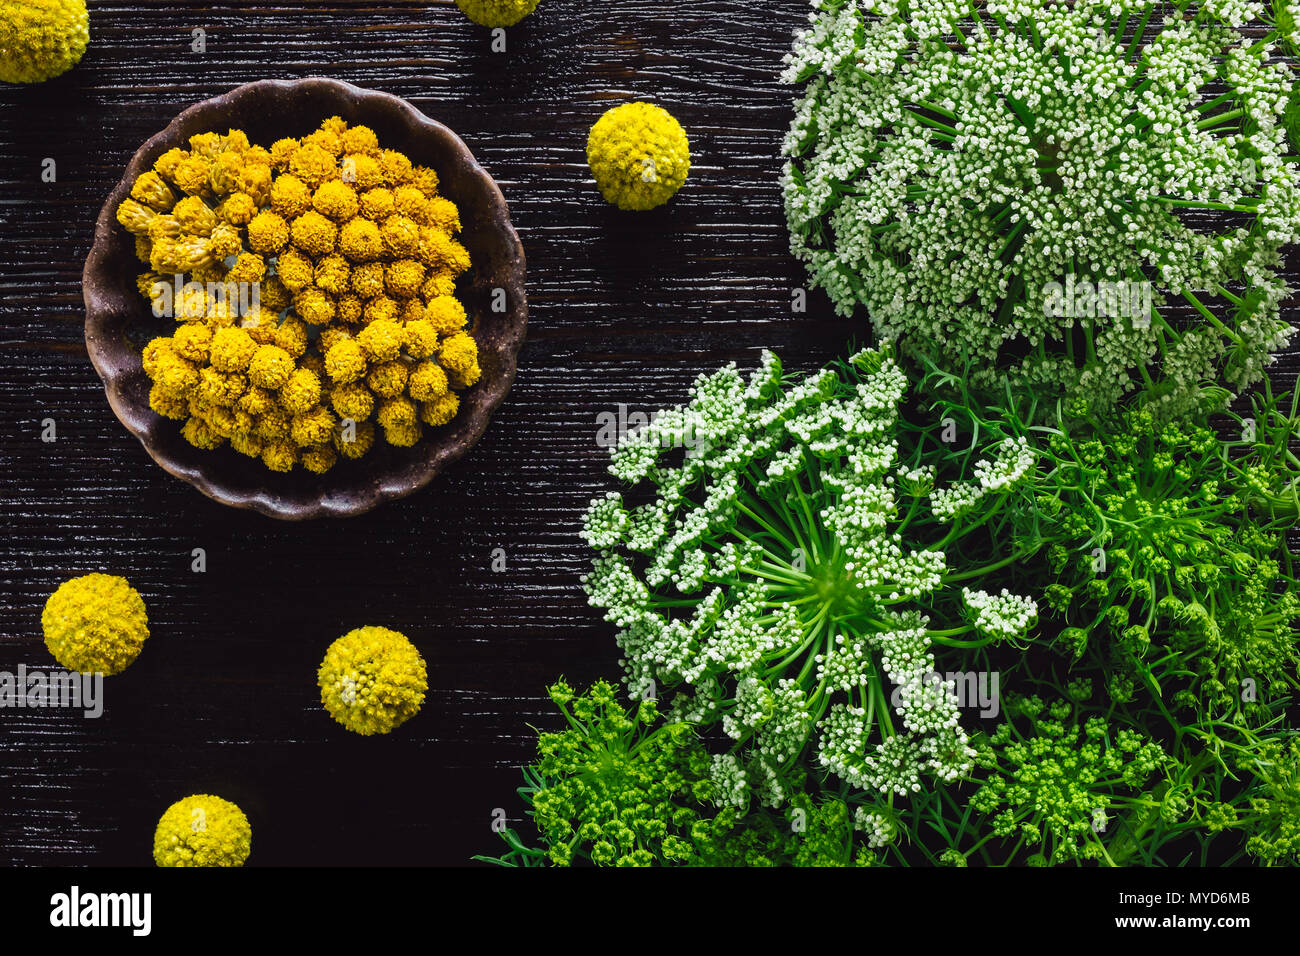 Craspedia and Clustered Everlasting Flowers on Dark Table with Wild Carrot - Stock Image